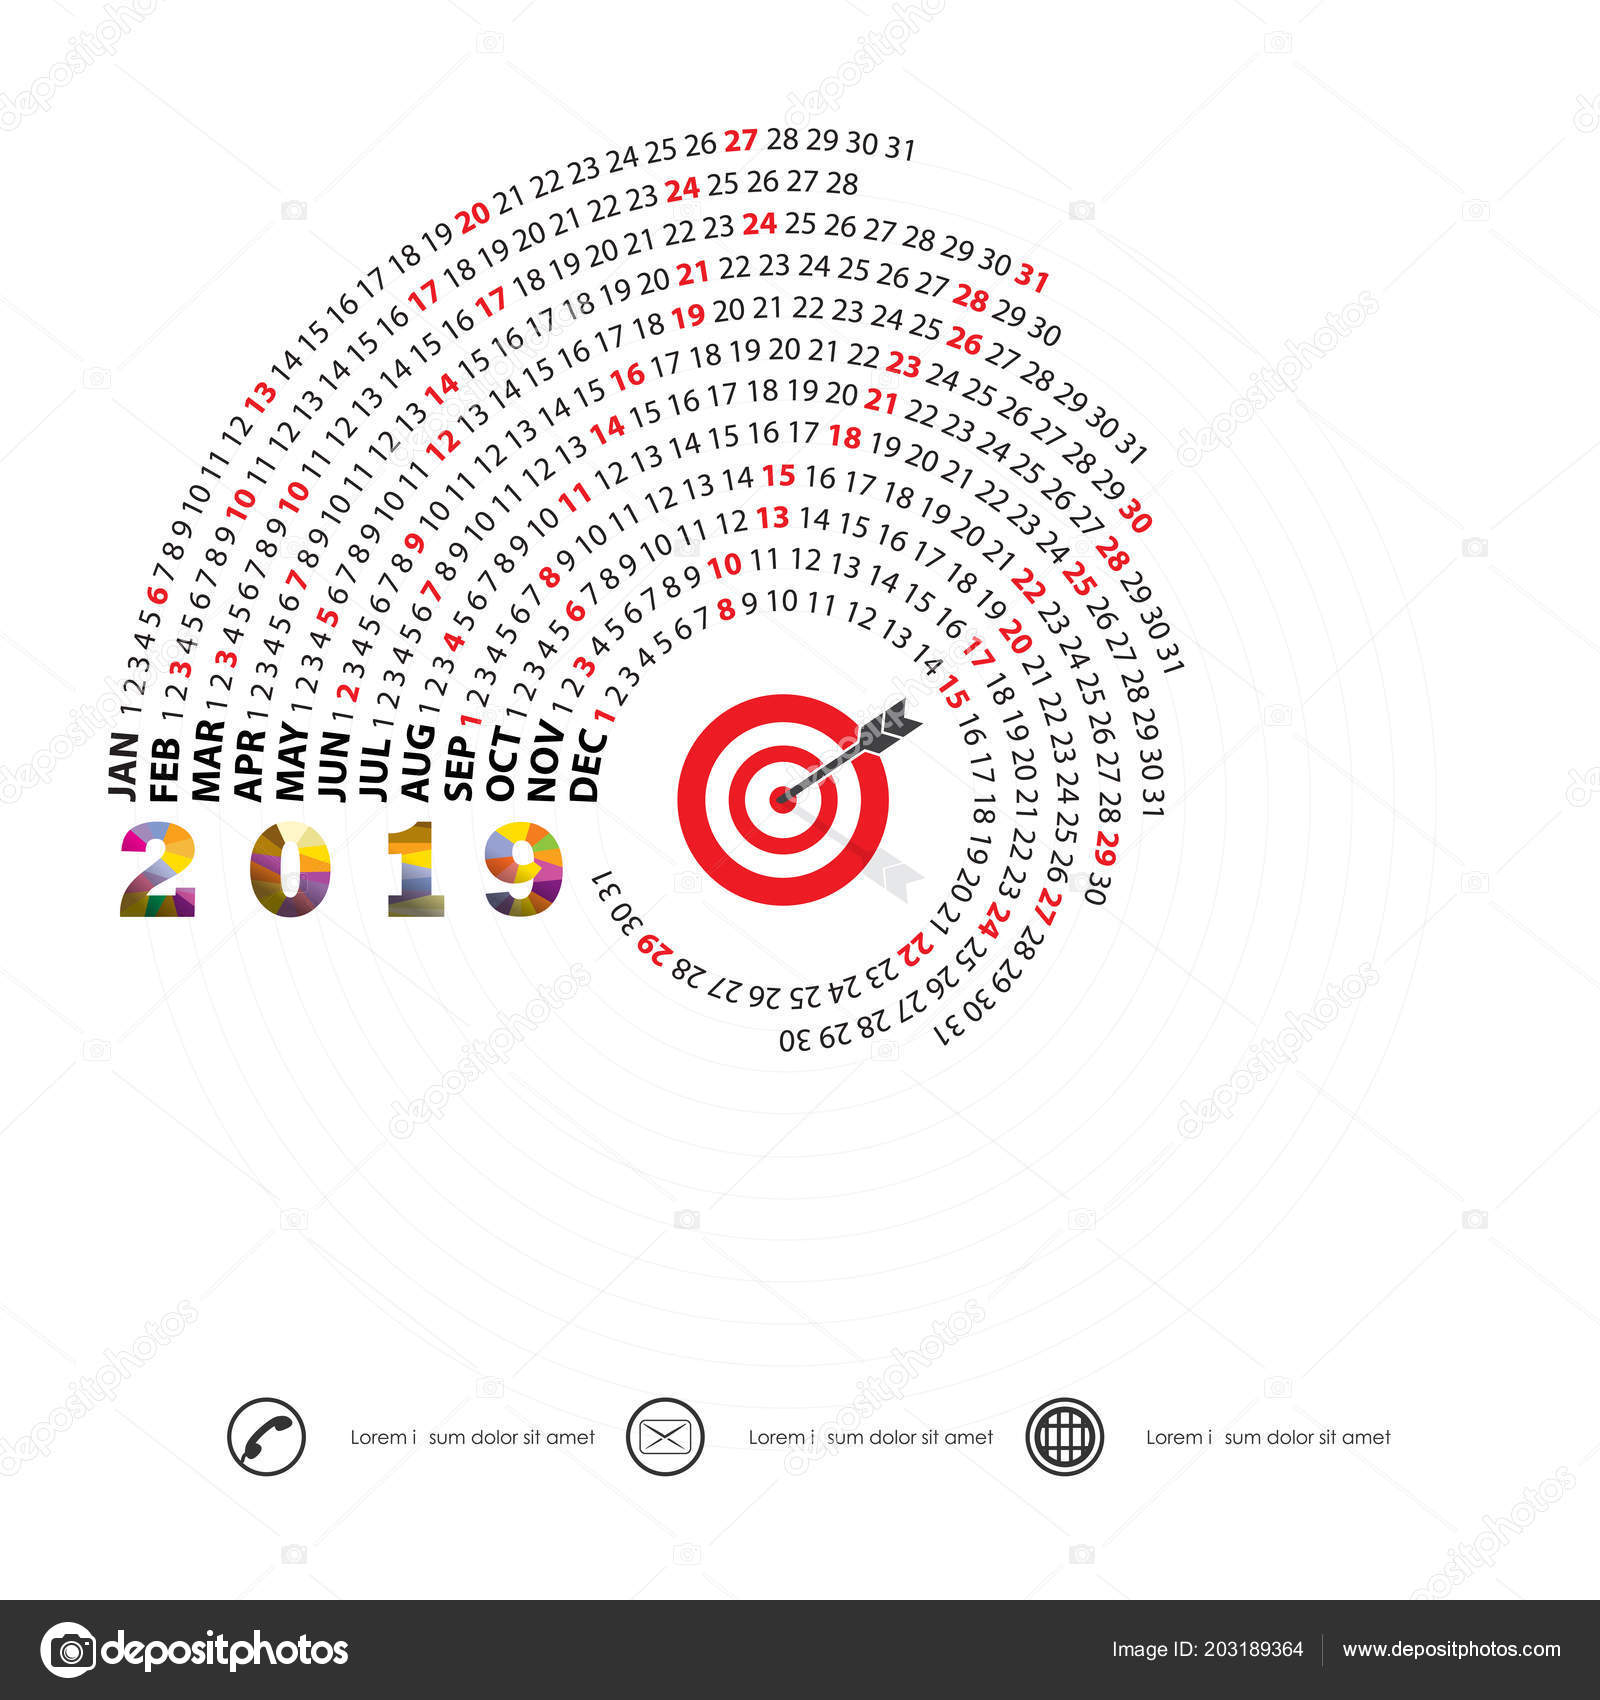 2019 calendar templatespiral calendarcalendar 2019 set of 12 monthsyearly calendar vector design stationery templatevector illustration